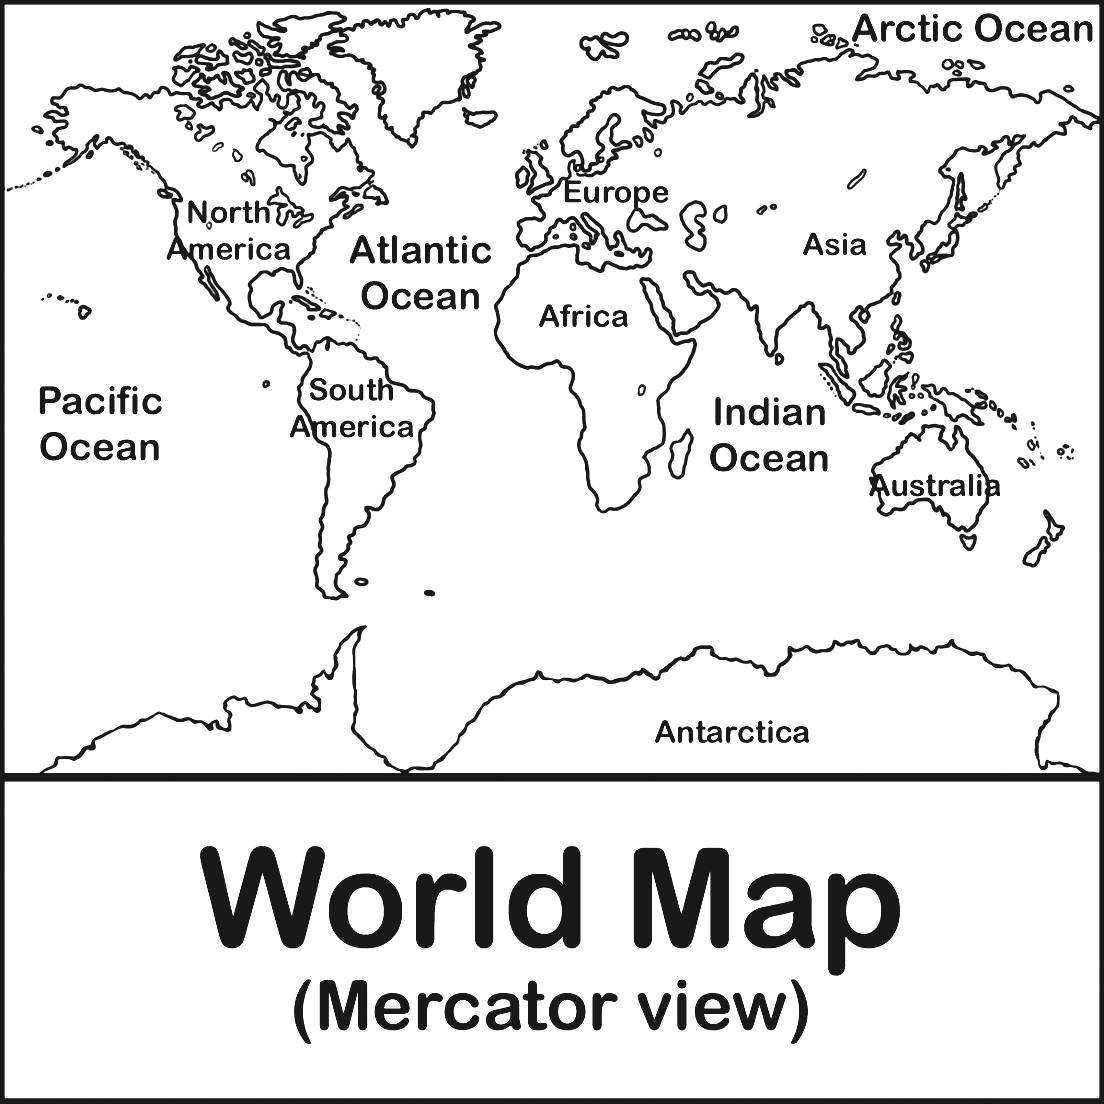 World map drawing at getdrawings free for personal use world 1104x1104 drawn map black and white gumiabroncs Images